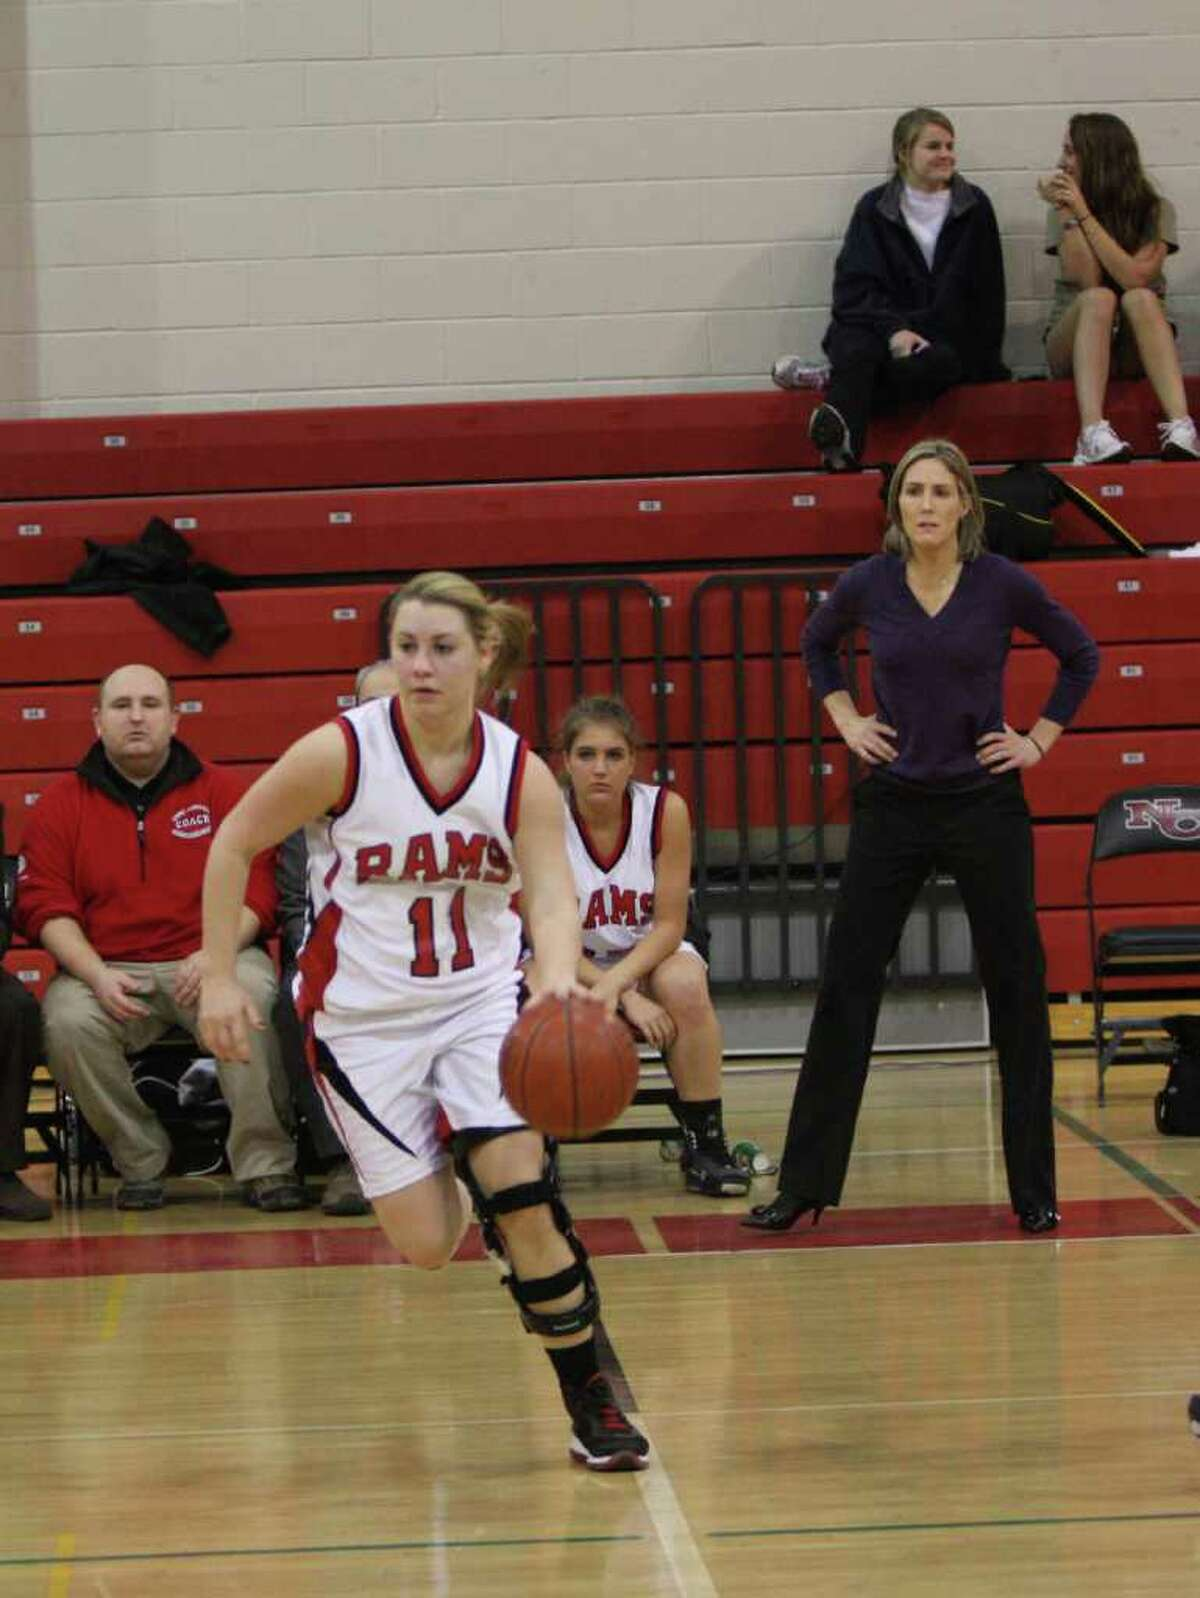 New Canaan's Courtney Rodges brings the ball up court as coach Kim Palmer looks on during the Rams' 48-36 loss to RHAM in the Class L playoffs on Wednesday, March 3.